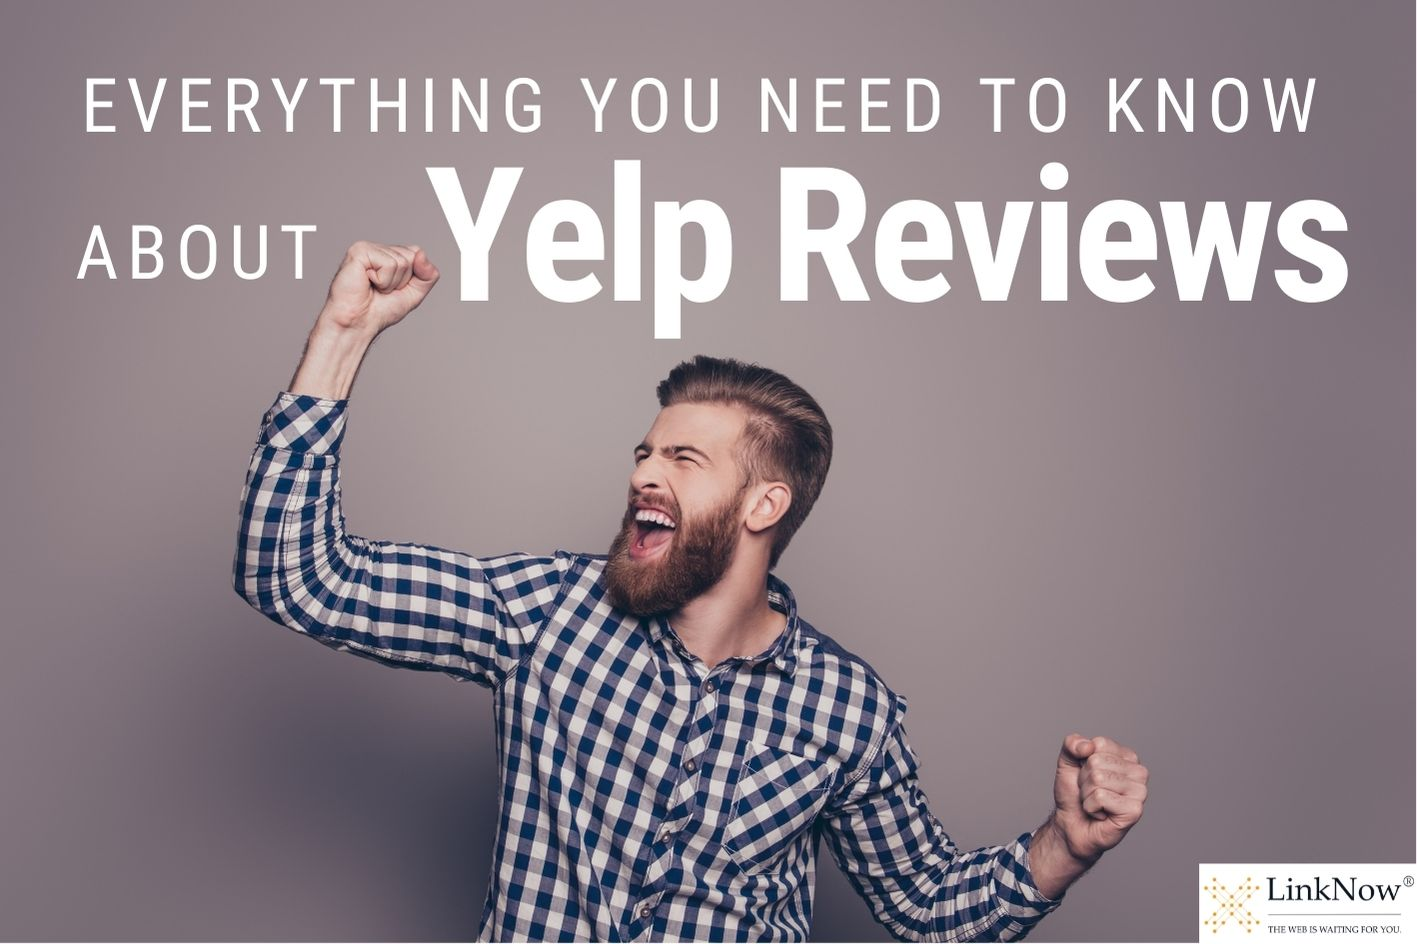 Everything you need to know about Yelp reviews.